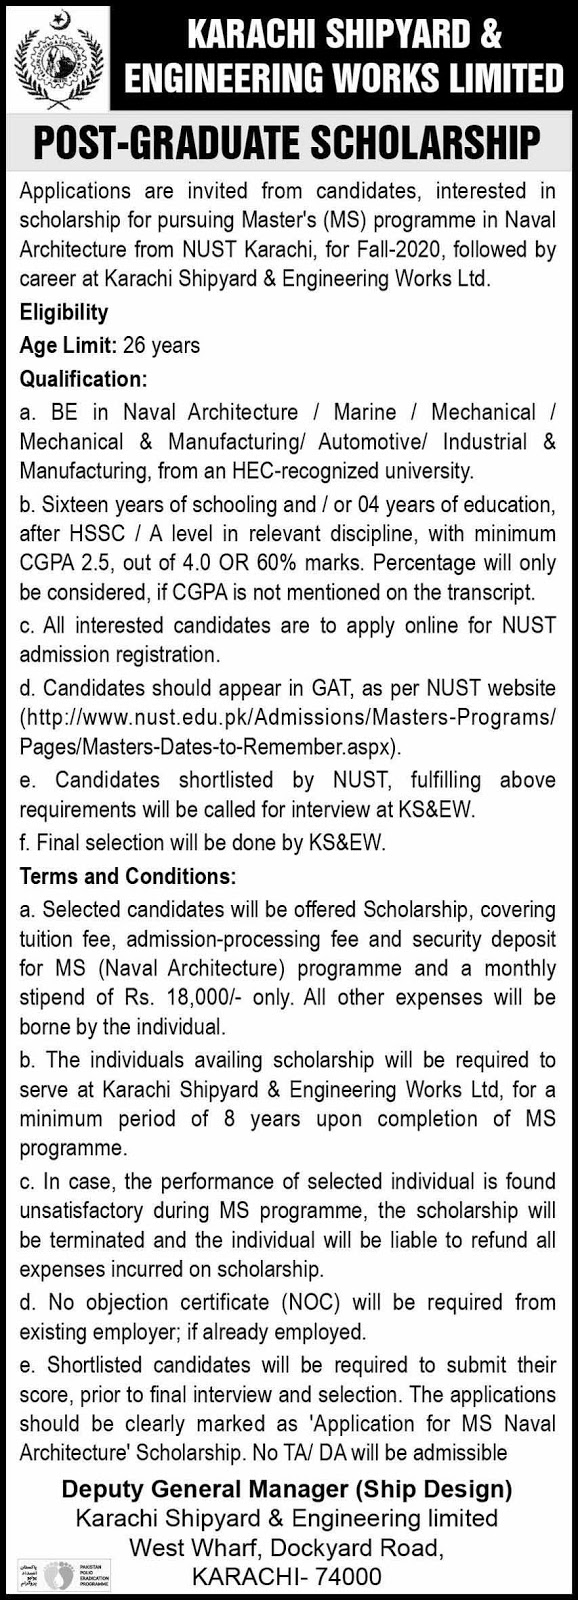 Postgraduate Scholarships from Karachi Shipyard & Engineering Works Limited  April 2020